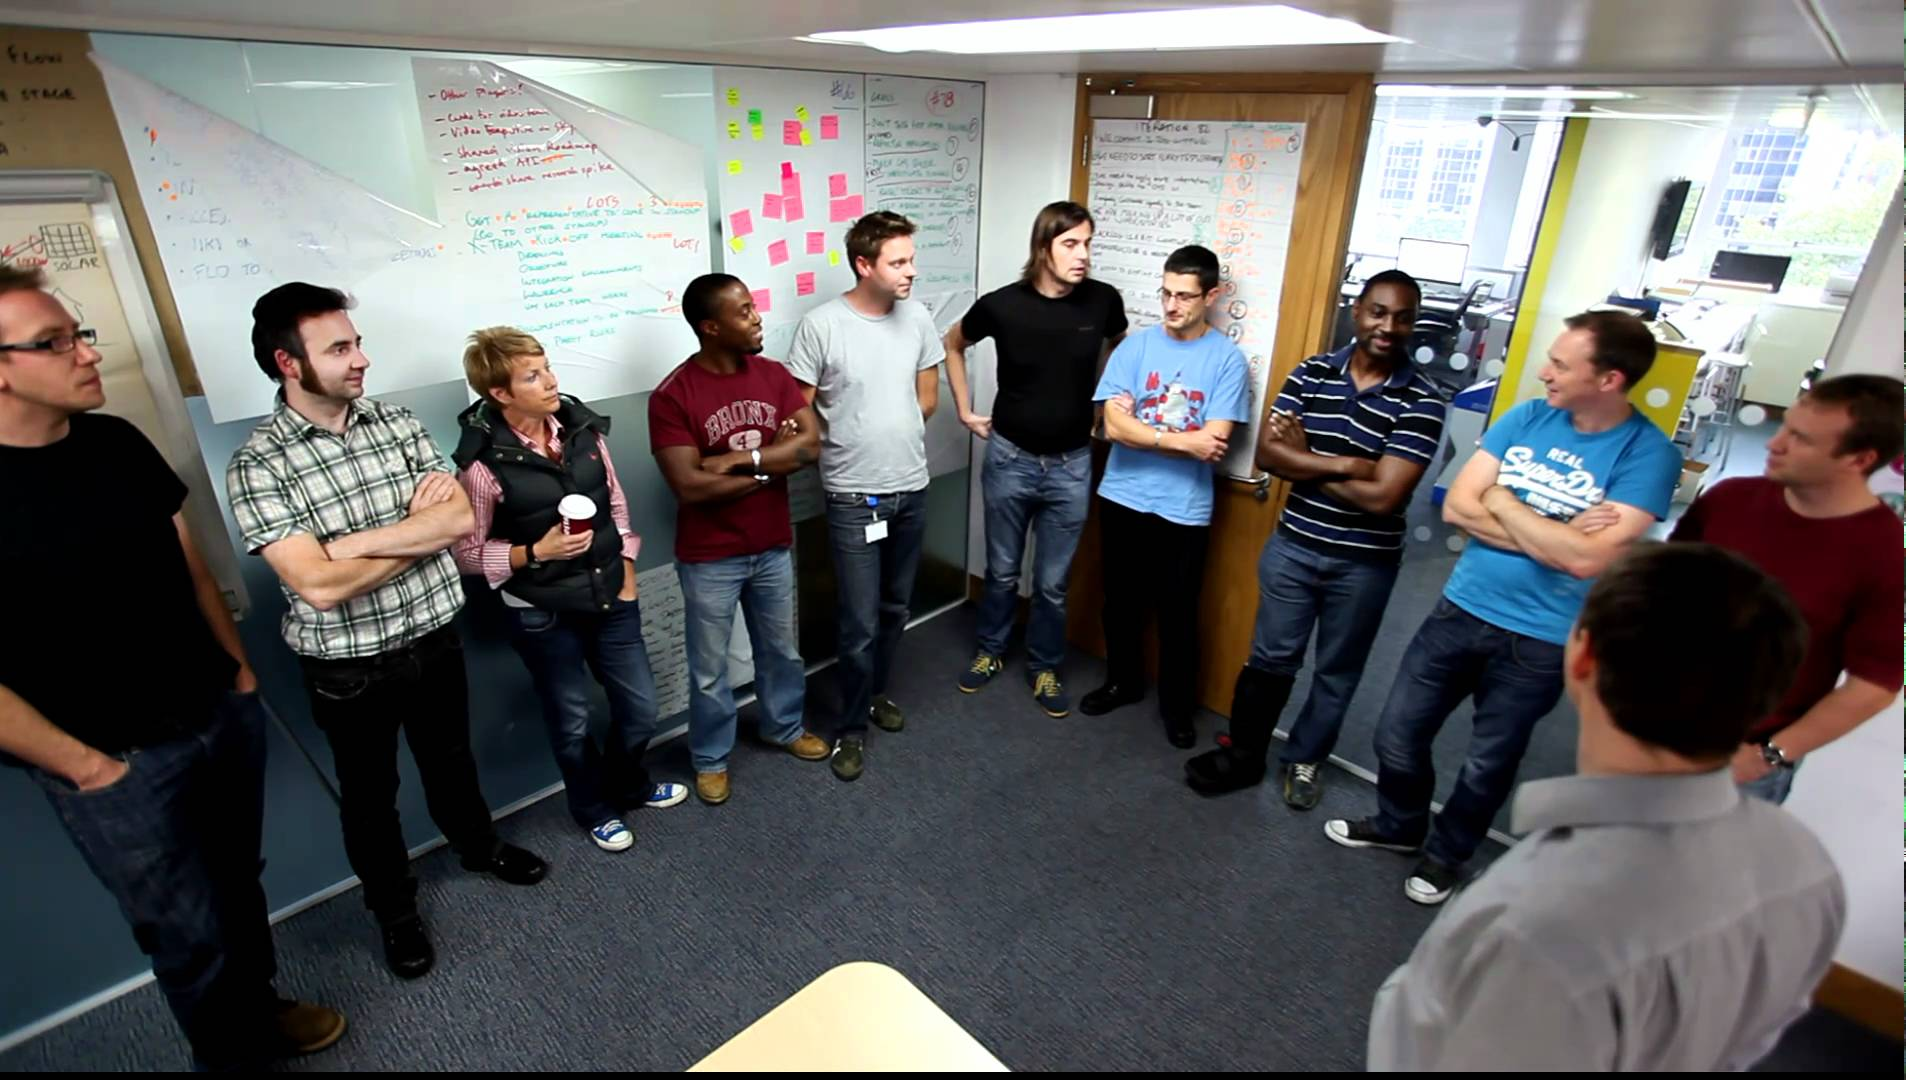 scrum-standup-meetings